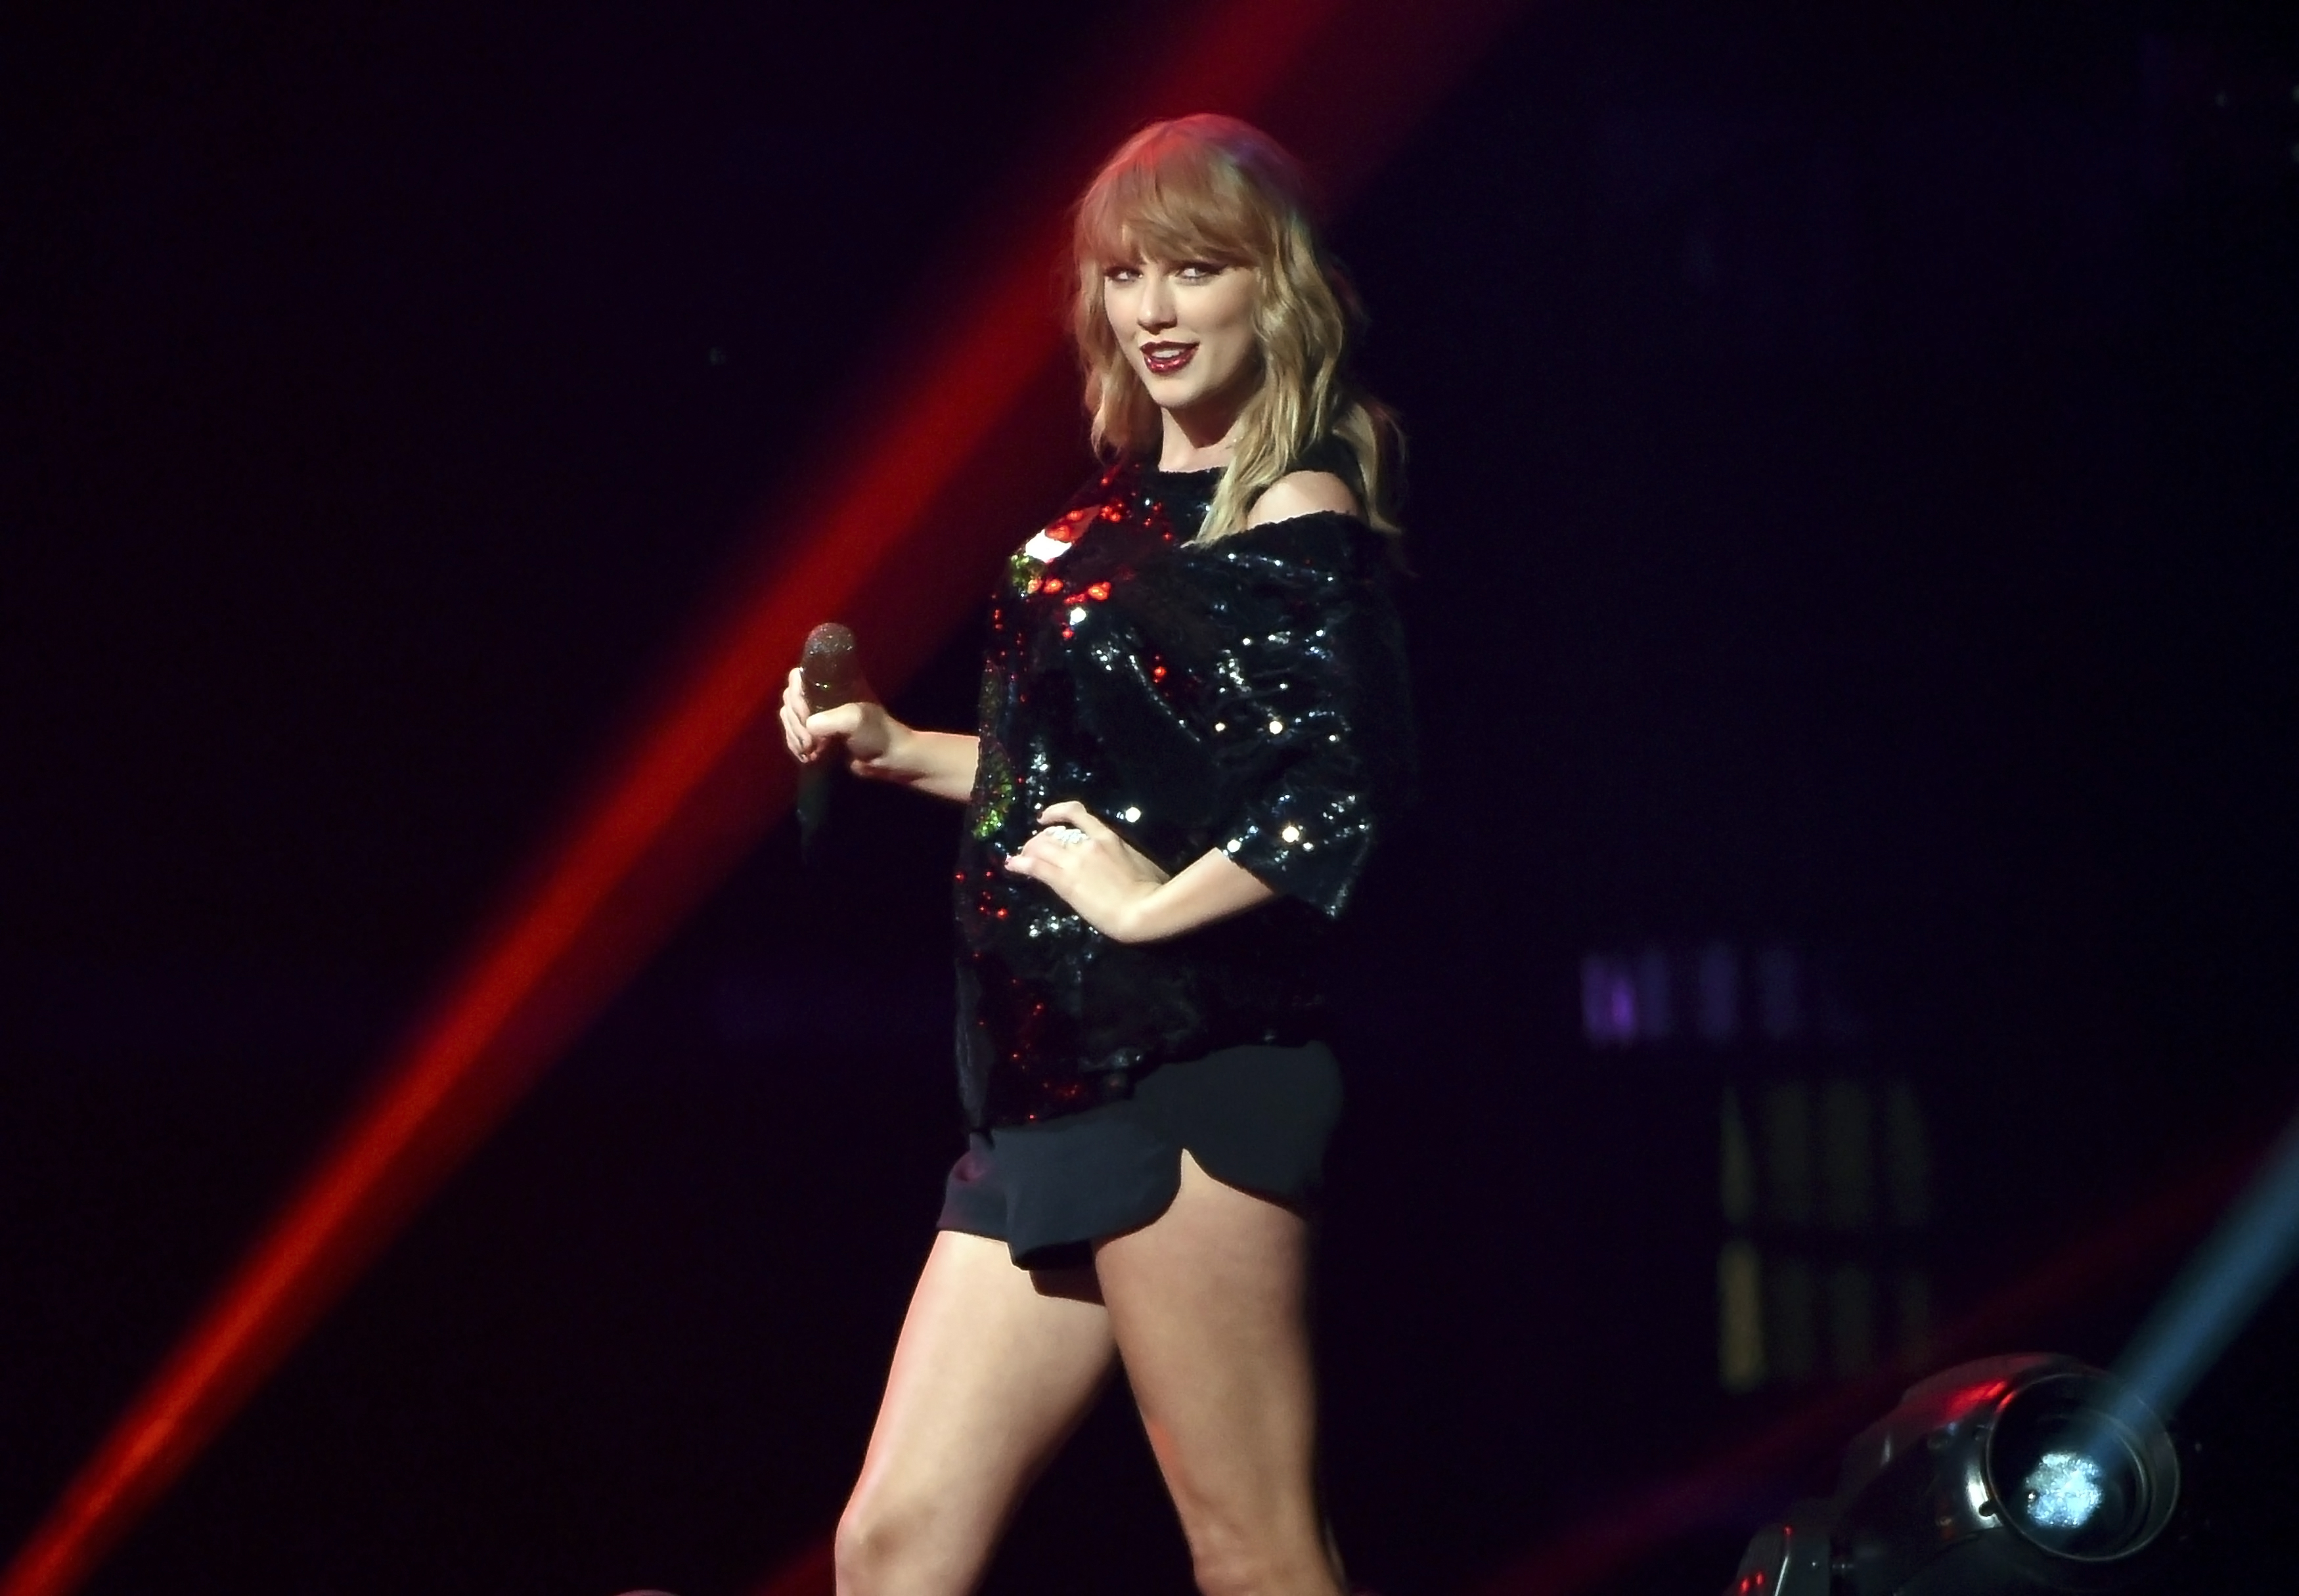 Taylor Swift Ticket Strategy Dynamic Pricing Like Airline Seats Rolling Stone